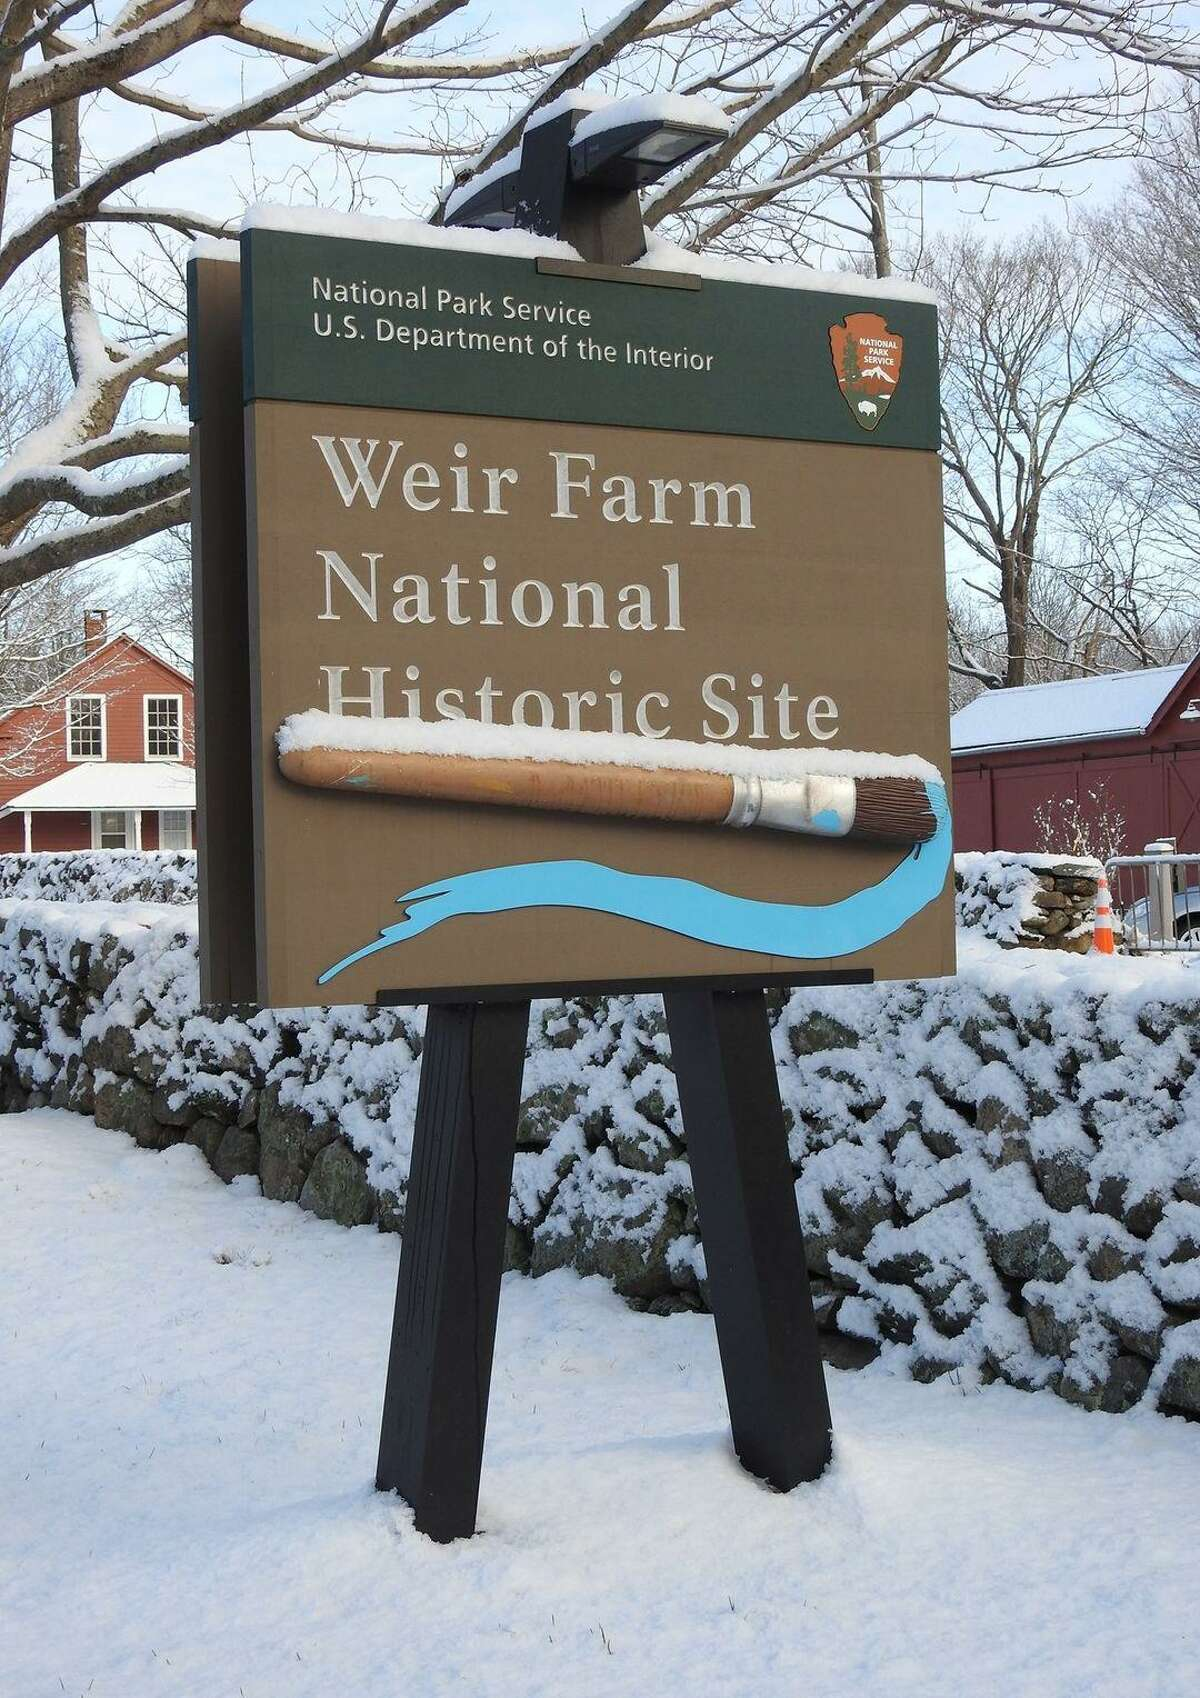 """Weir Farm is offering a virtual park ranger program. """"We believe that the passage of the bill for this new name truly represents the wide range of cultural, historical and recreational resources that the park offers to the public,"""" Liz Castagna, vice president of the Friends of Weir Farm, said in a statement. For more information on the history of Weir Farm and how to visit, go to www.nps.gov/wefa."""